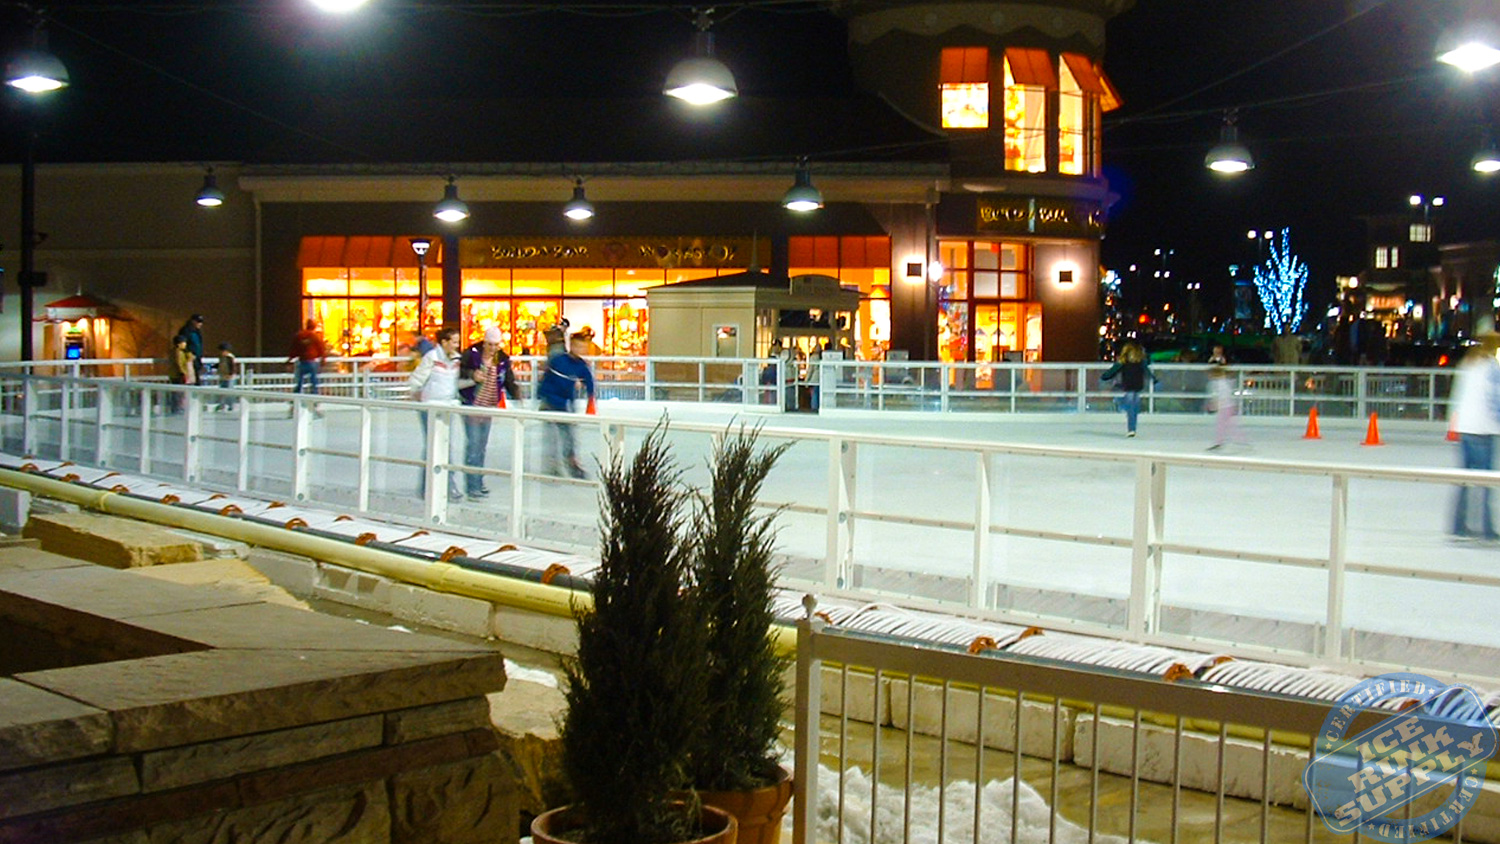 Ice Skating Rink Loveland, Colorado